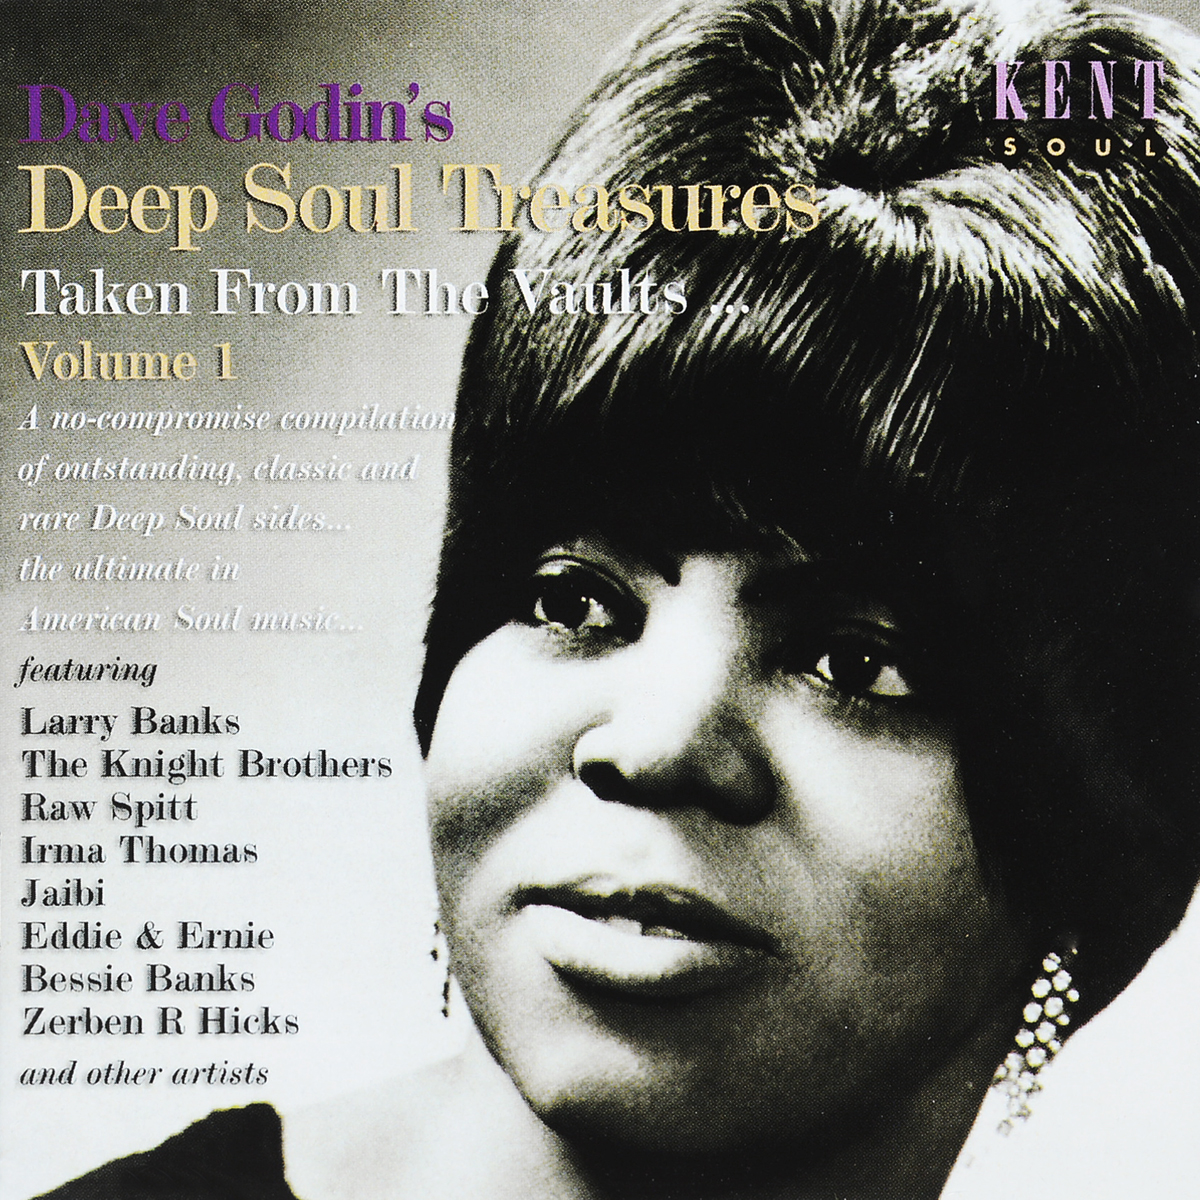 Dave Godin's Deep Soul Treasures (Taken From The Vaults...) Volume 1 dave godin s deep soul treasures taken from the vaults volume 1